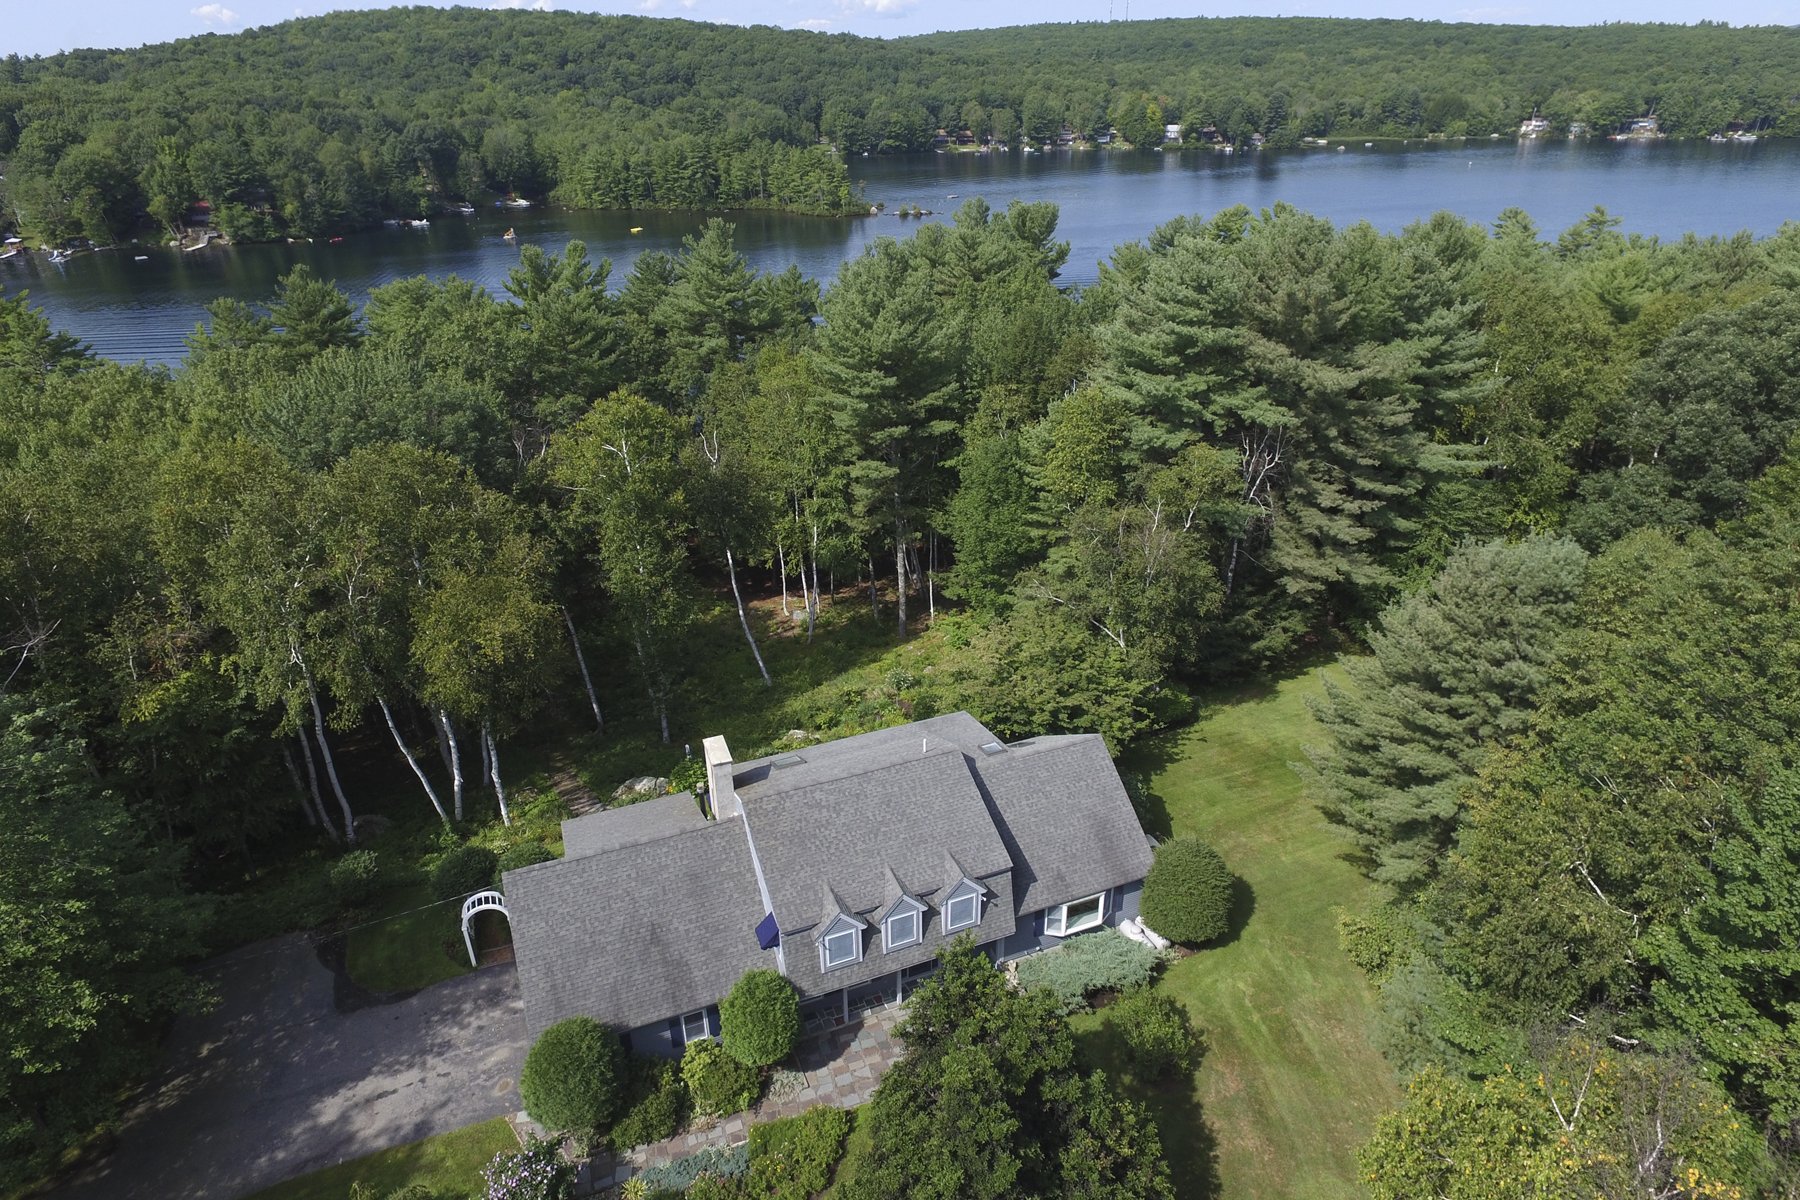 Single Family Home for Sale at Birch Acres 73 Goodwin Lane Lyman, Maine 04002 United States